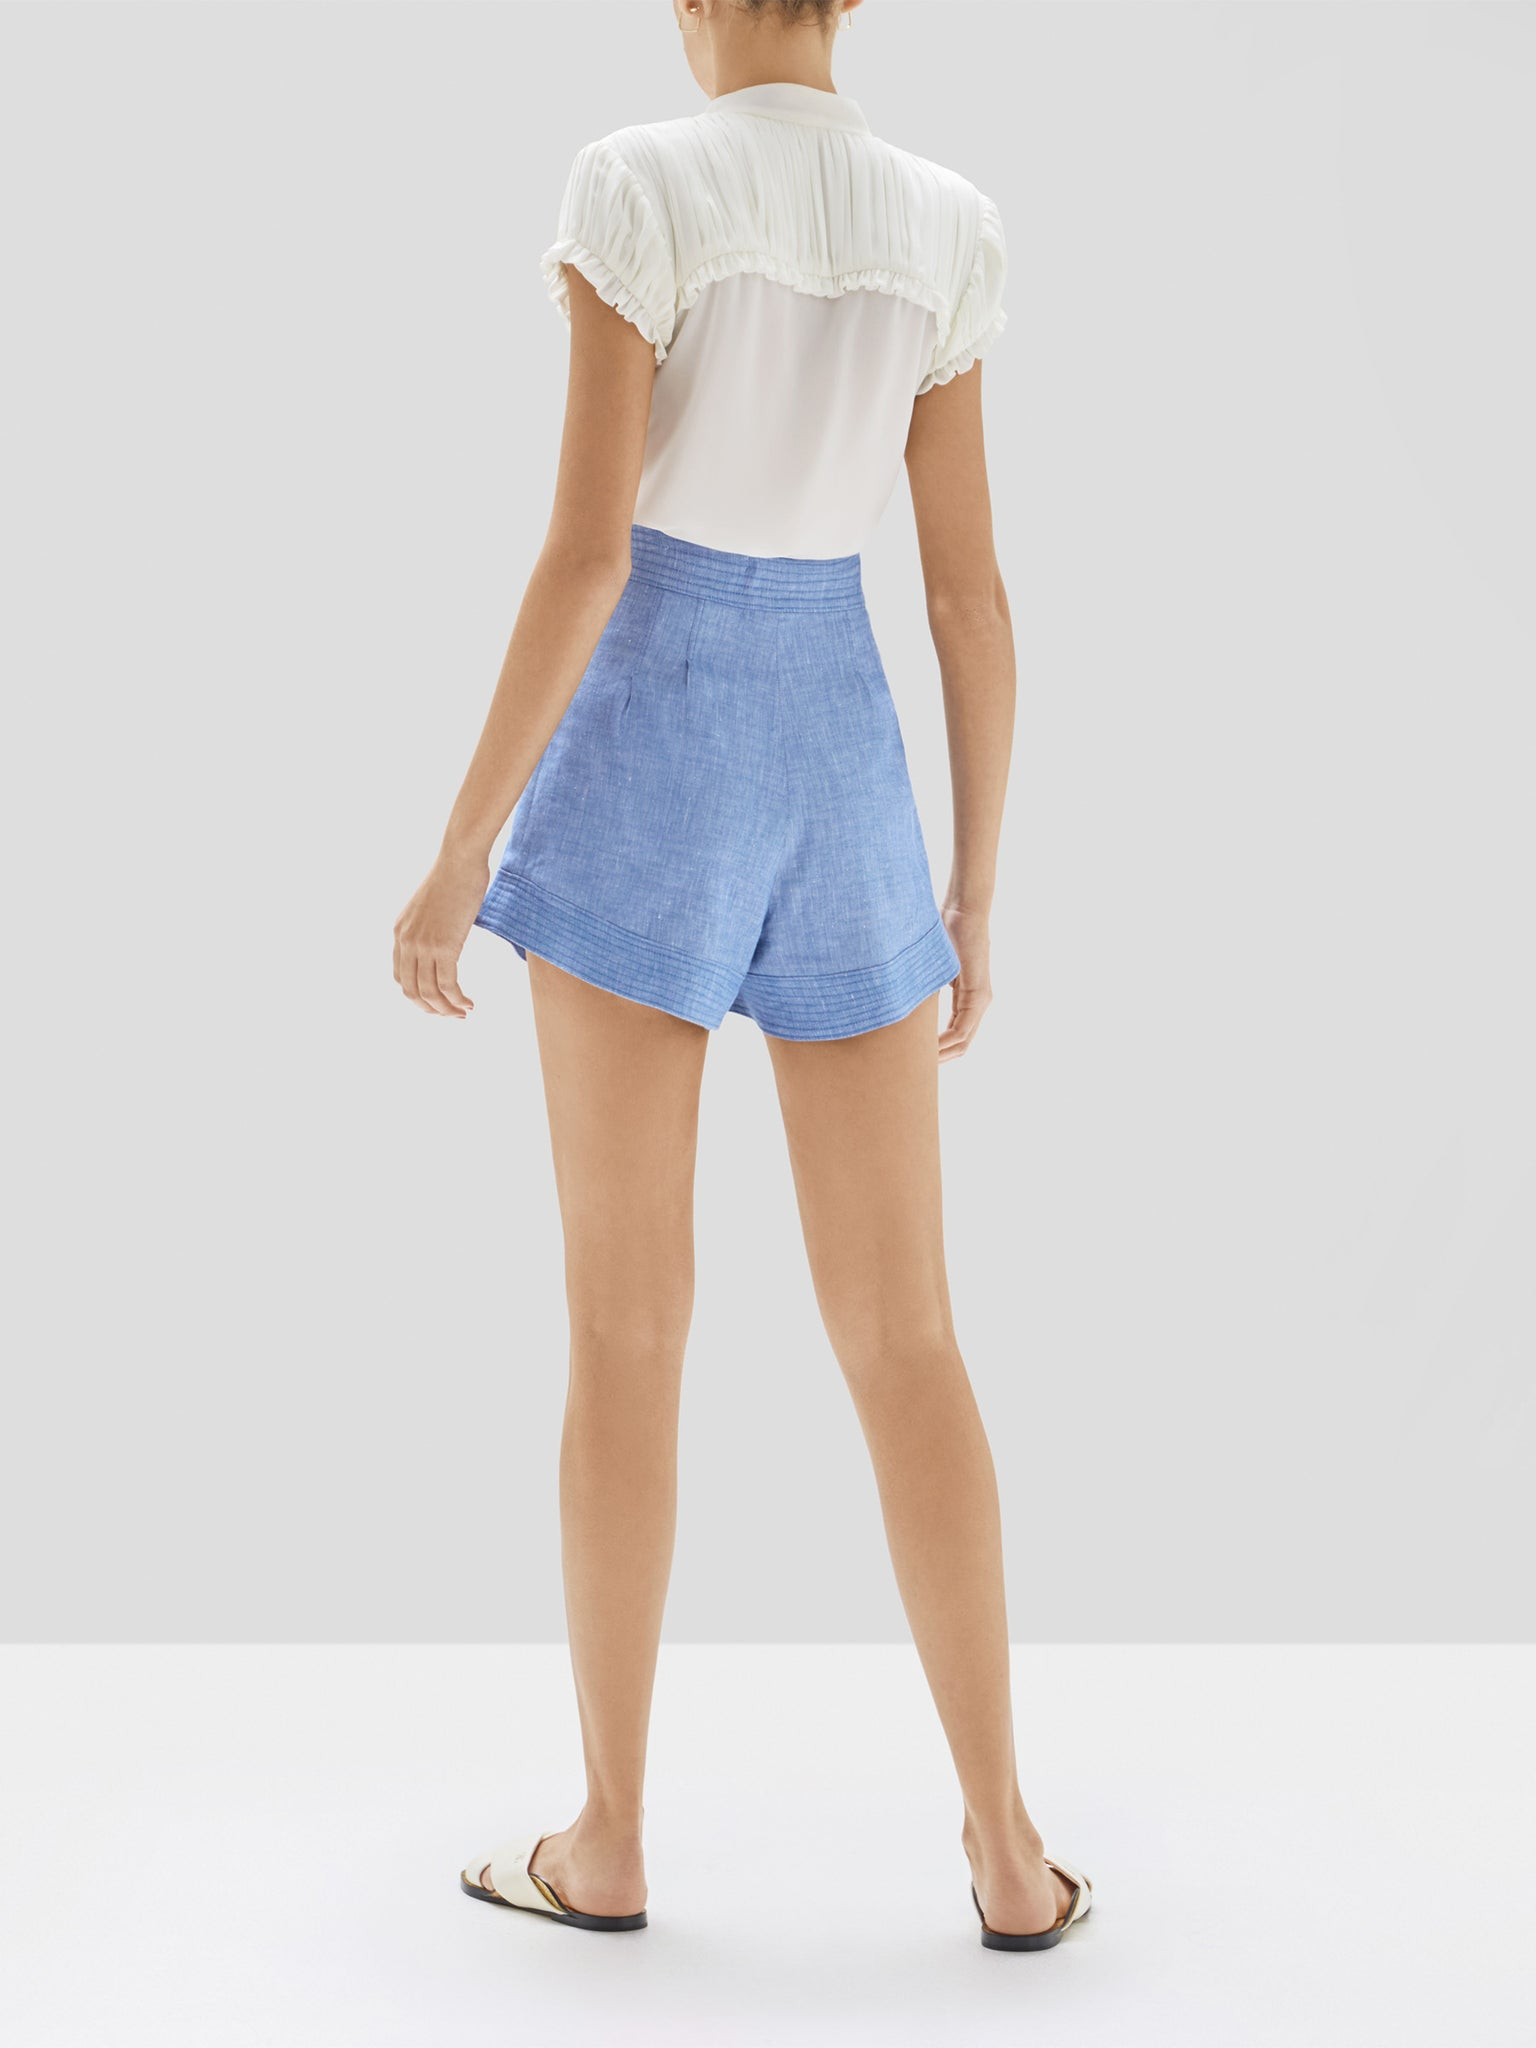 Alexis Fabien Top in White and Garwen Short in Light Blue from Pre Fall 2020 Collection - Rear View